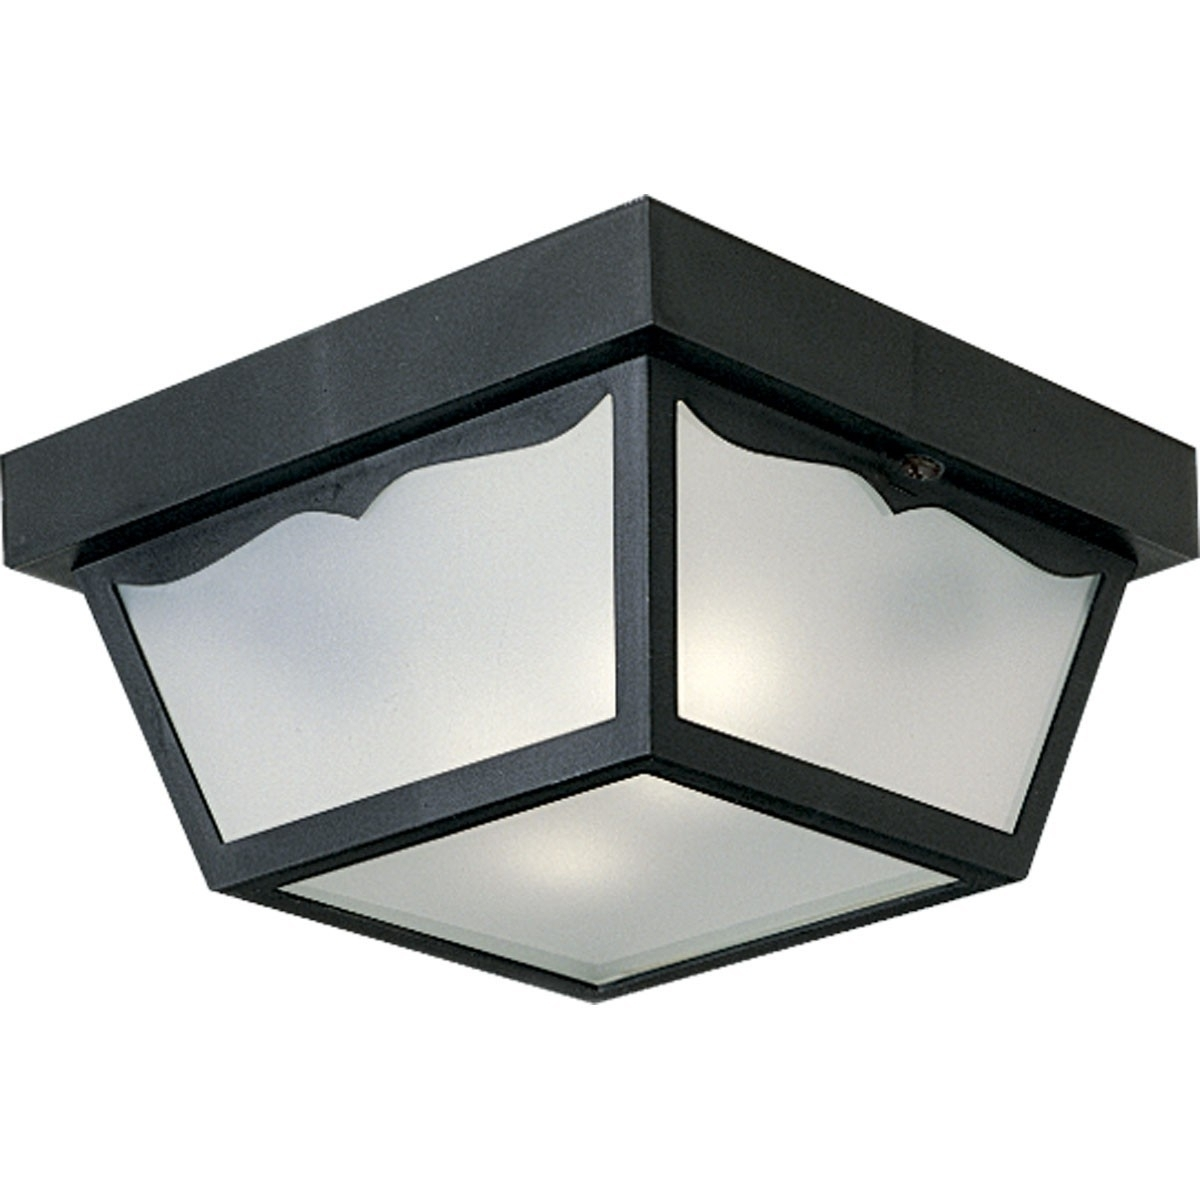 Outdoor Flush Mount Ceiling Light With Motion Sensor • Outdoor Lighting With Regard To Outdoor Ceiling Lights With Motion Sensor (#9 of 15)